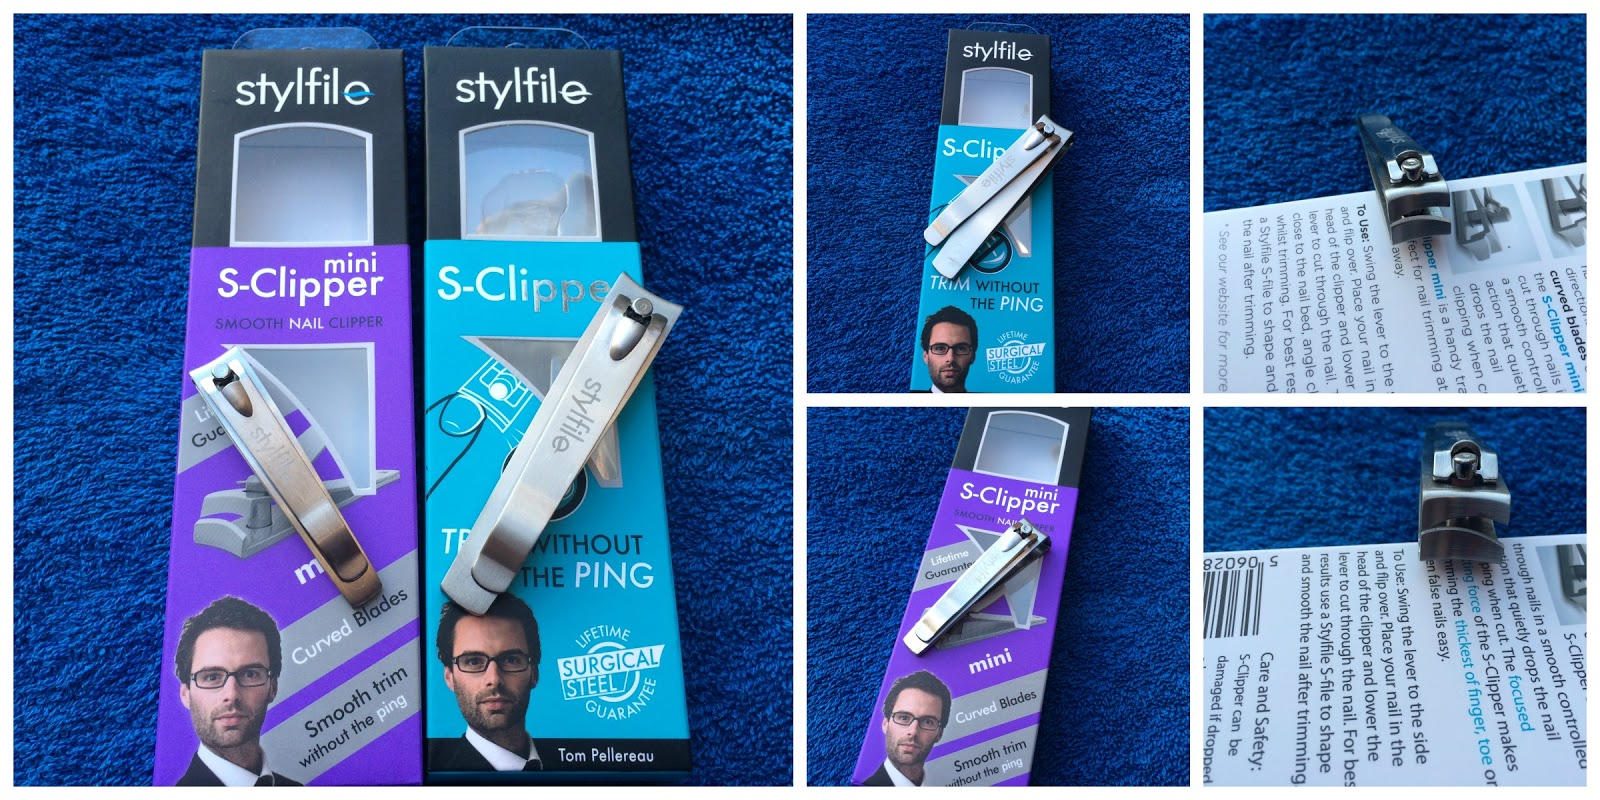 Stylfile with Tom Pellereau